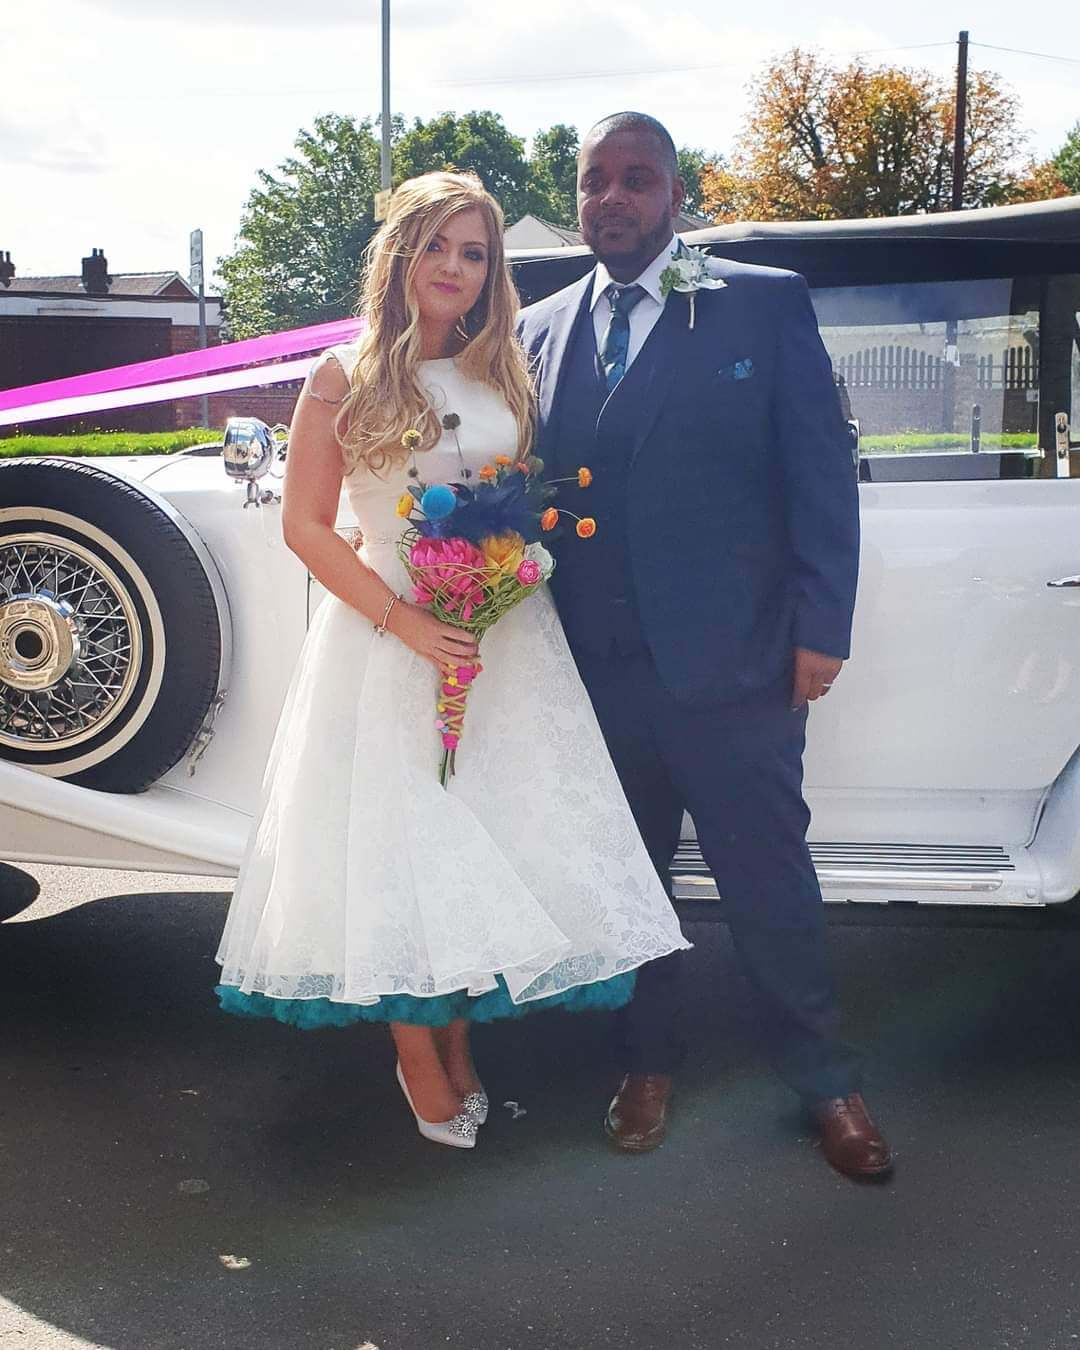 Bride and Groom next to their vintage car arriving at the church